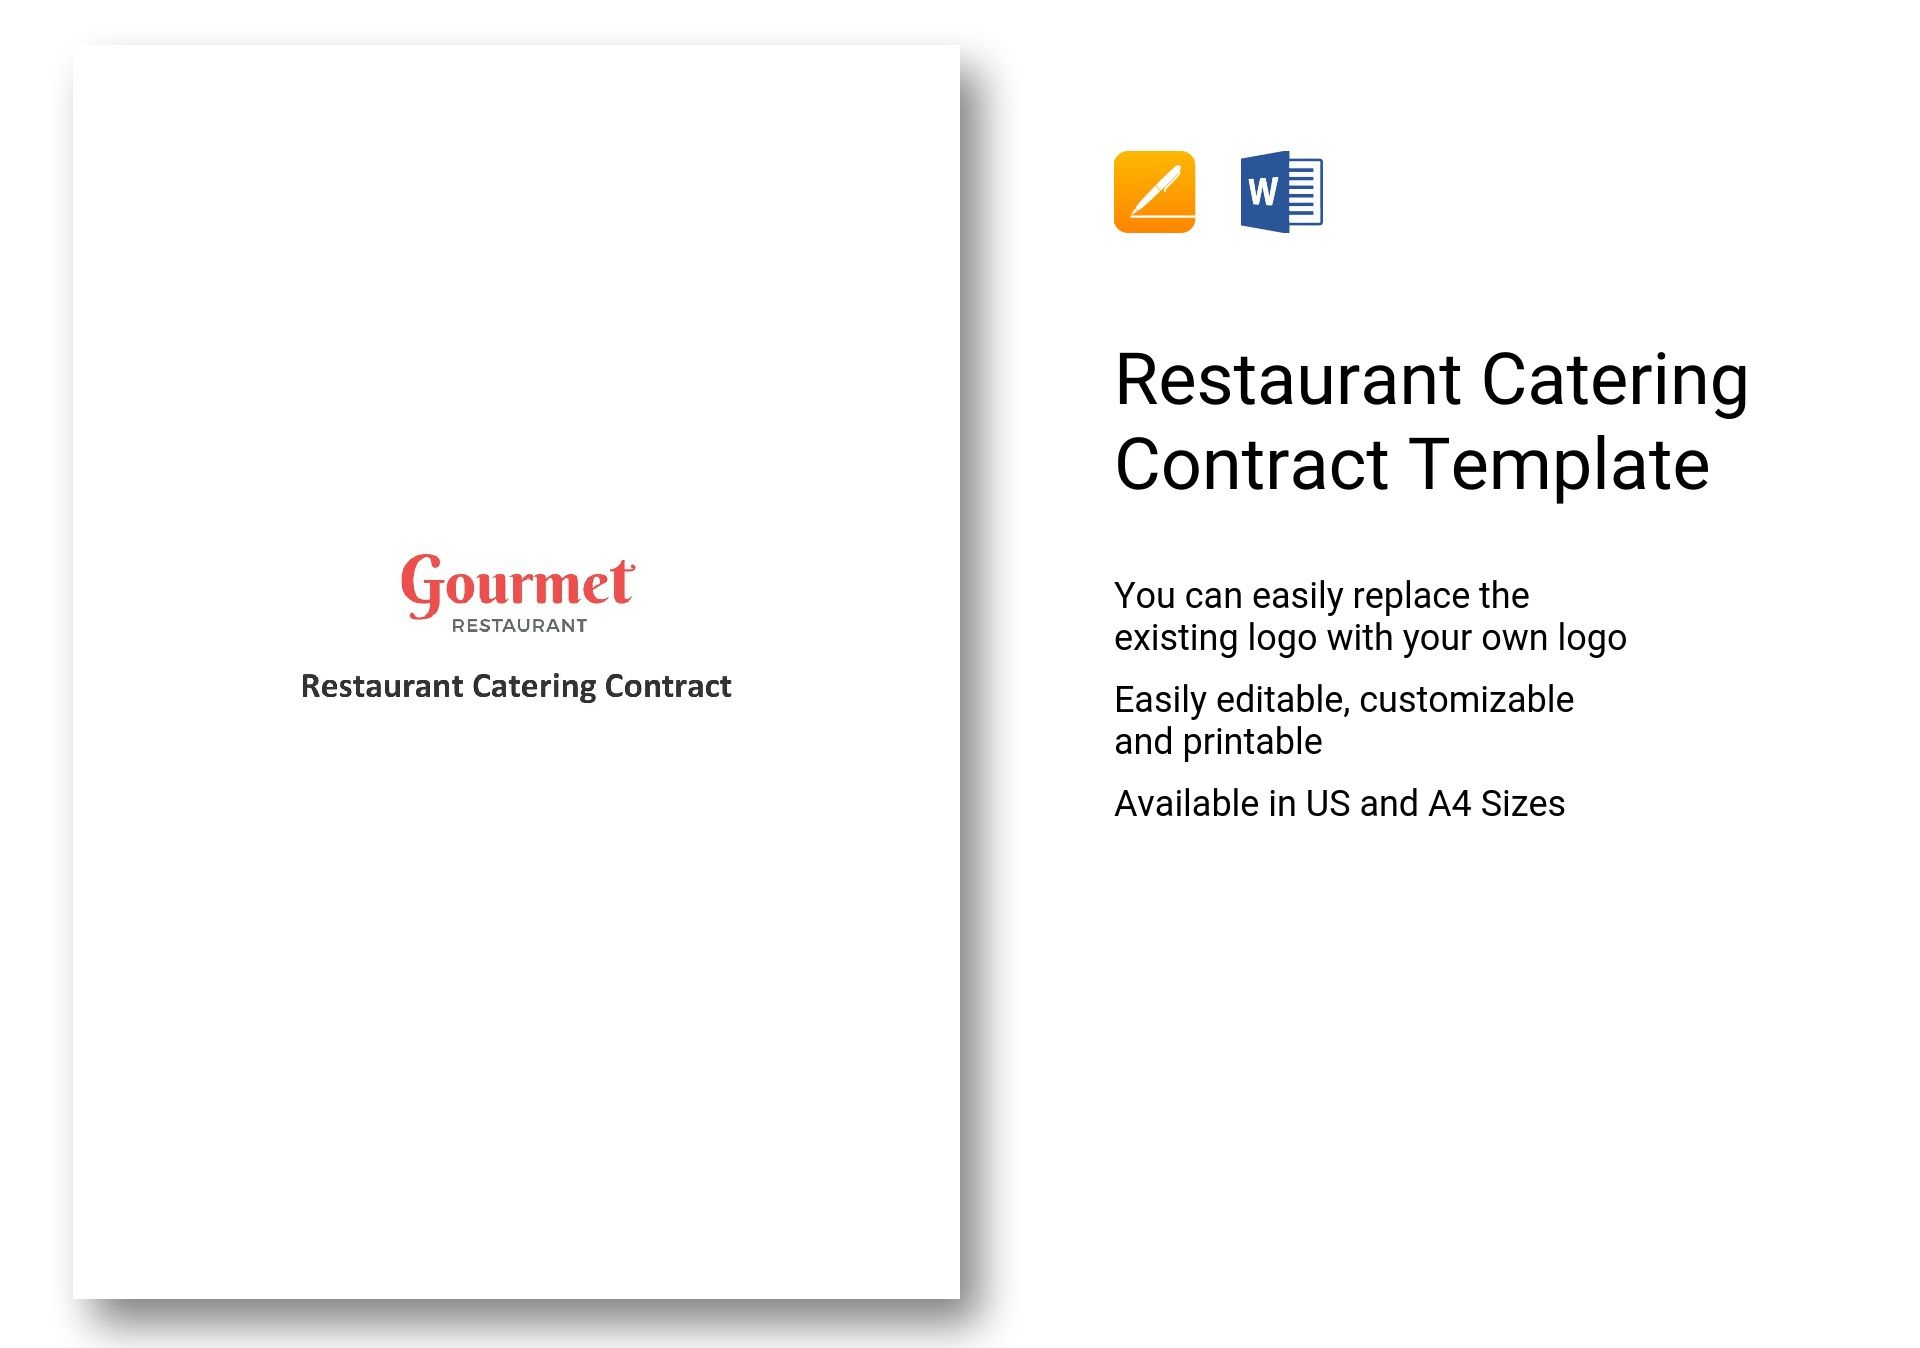 Restaurant Catering Contract Template In Word, Apple Pages Regarding Catering Contract Template Word